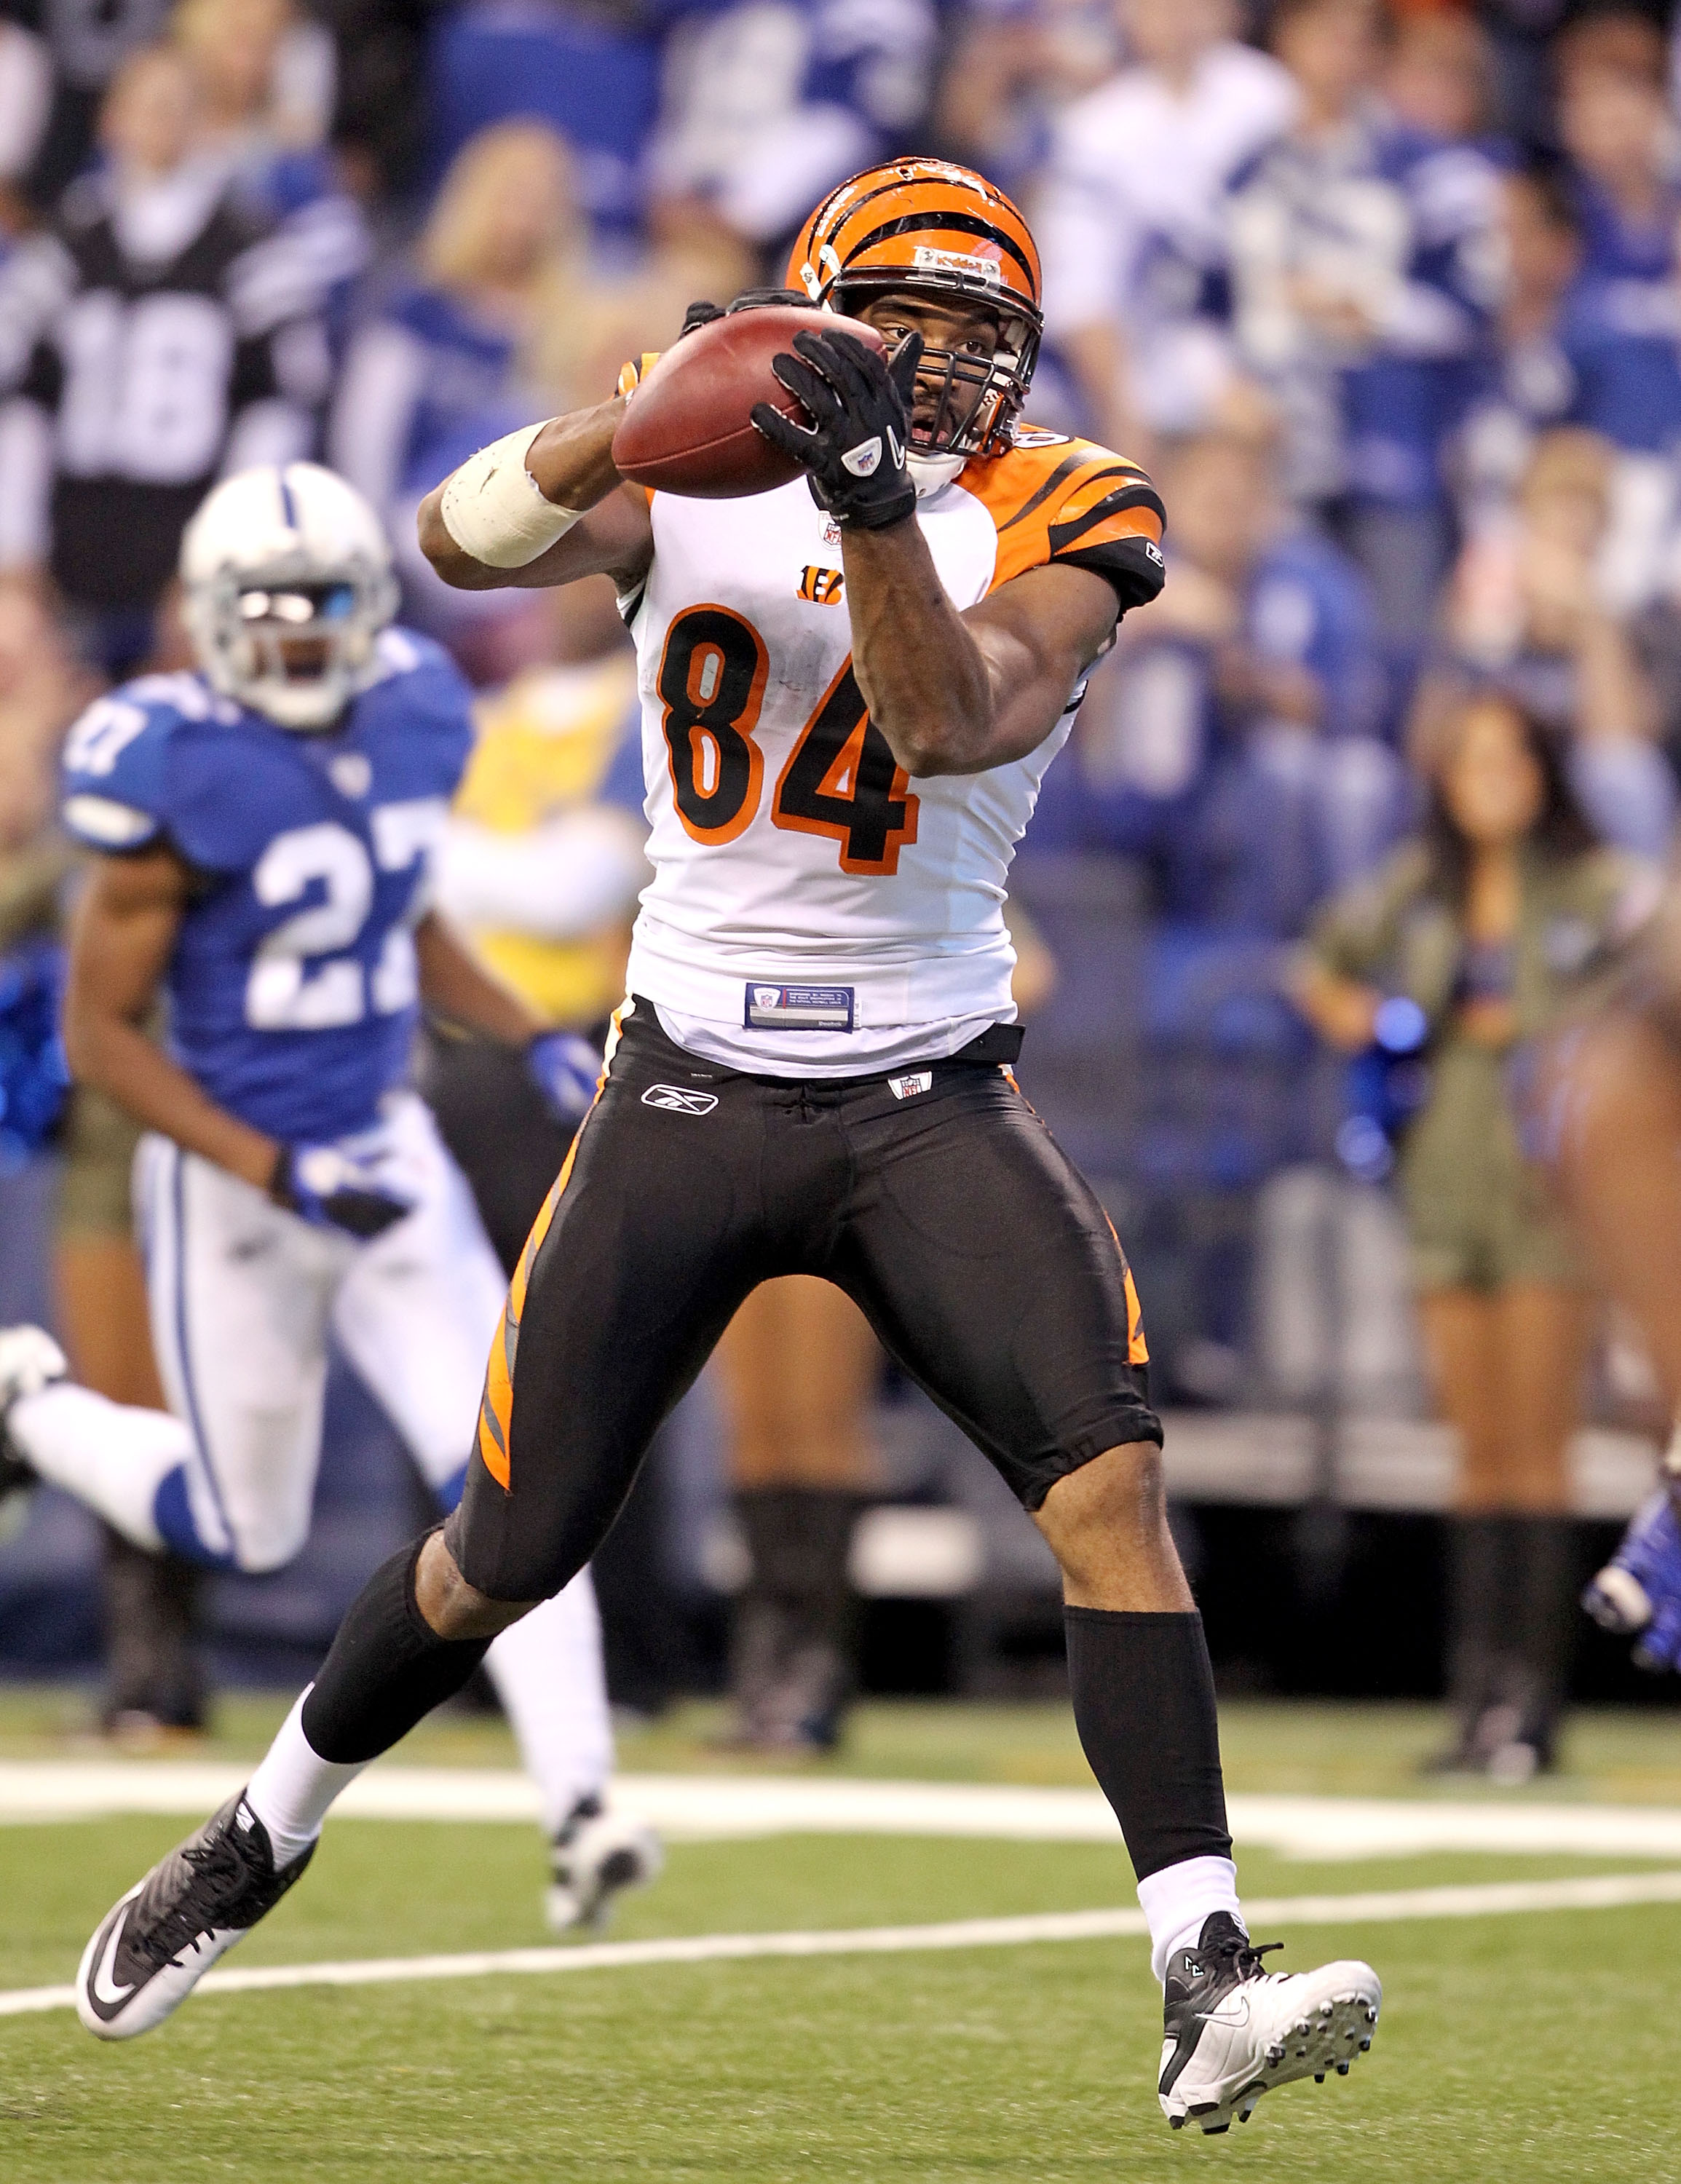 INDIANAPOLIS - NOVEMBER 14:  Jermaine Gresham #84 of the Cincinnati Bengals catches a pass for a touchdown during the Bengals 23-17 loss to the Indianapolis Colts in the NFL game at Lucas Oil Stadium on November 14, 2010 in Indianapolis, Indiana.  (Photo